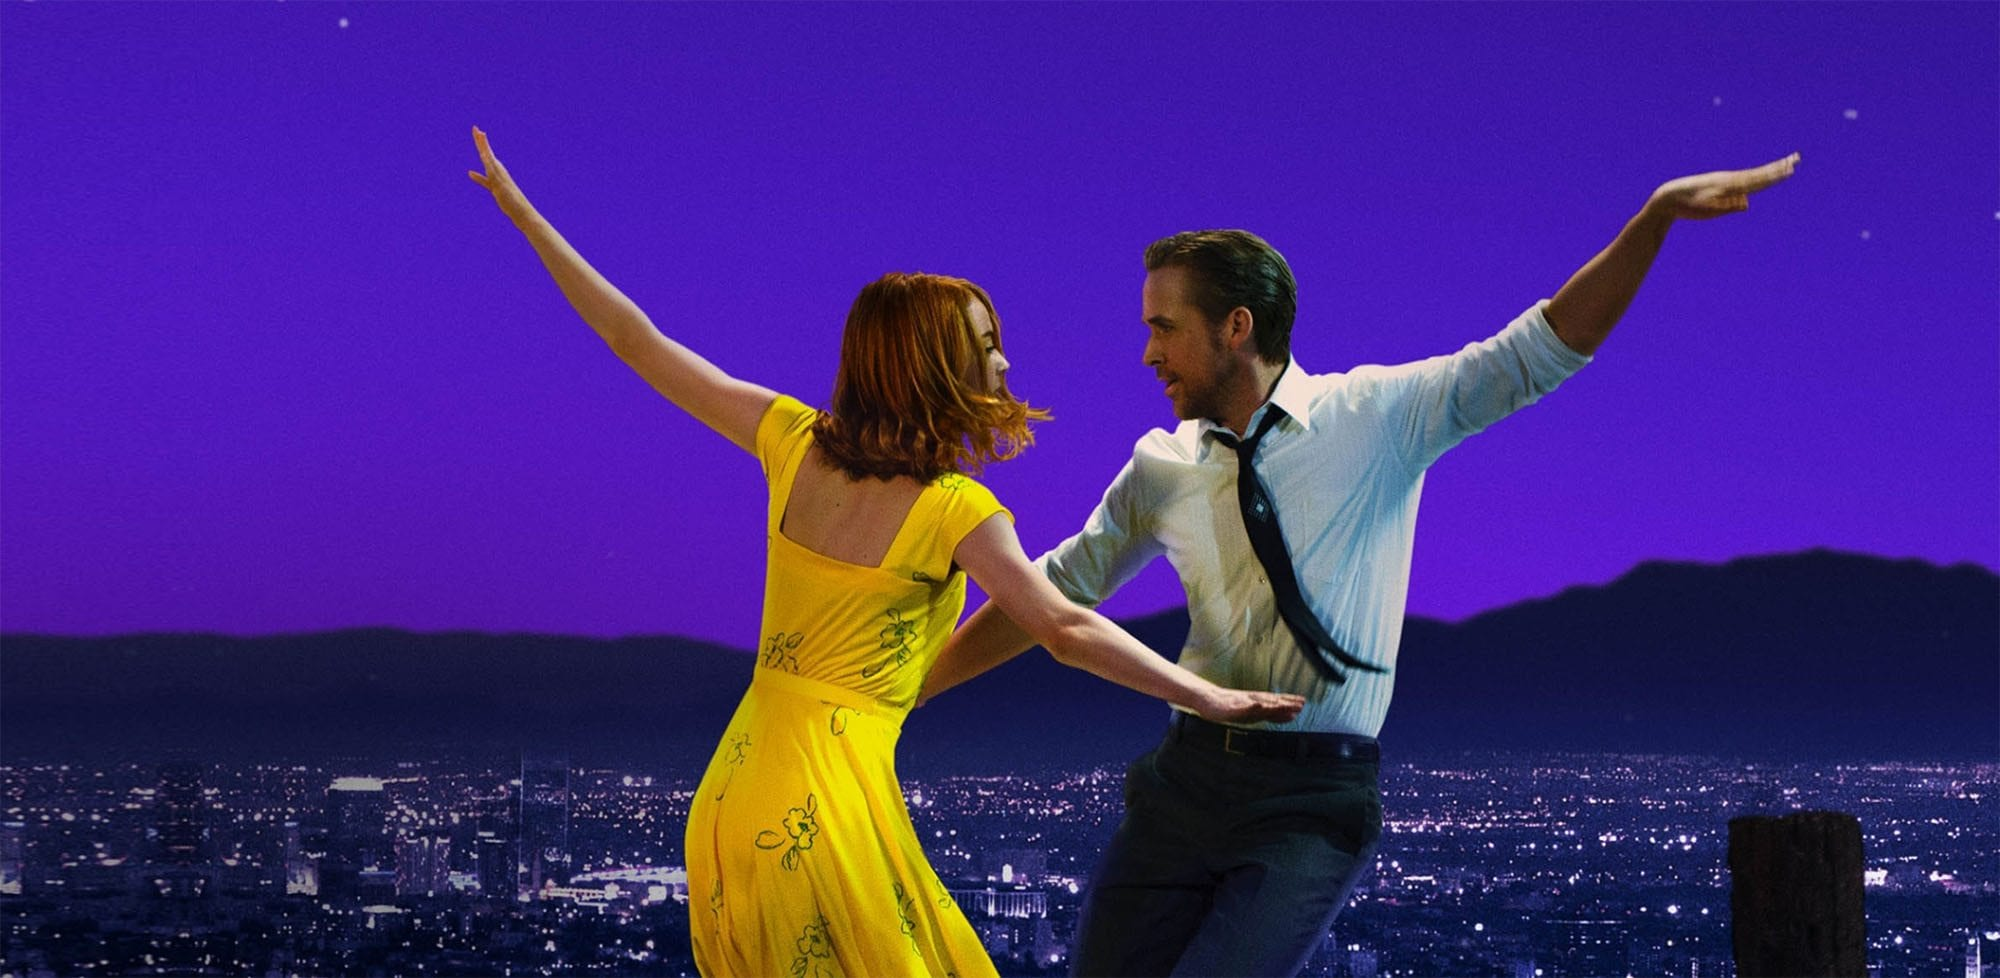 How To Improve La La Land (2016.)